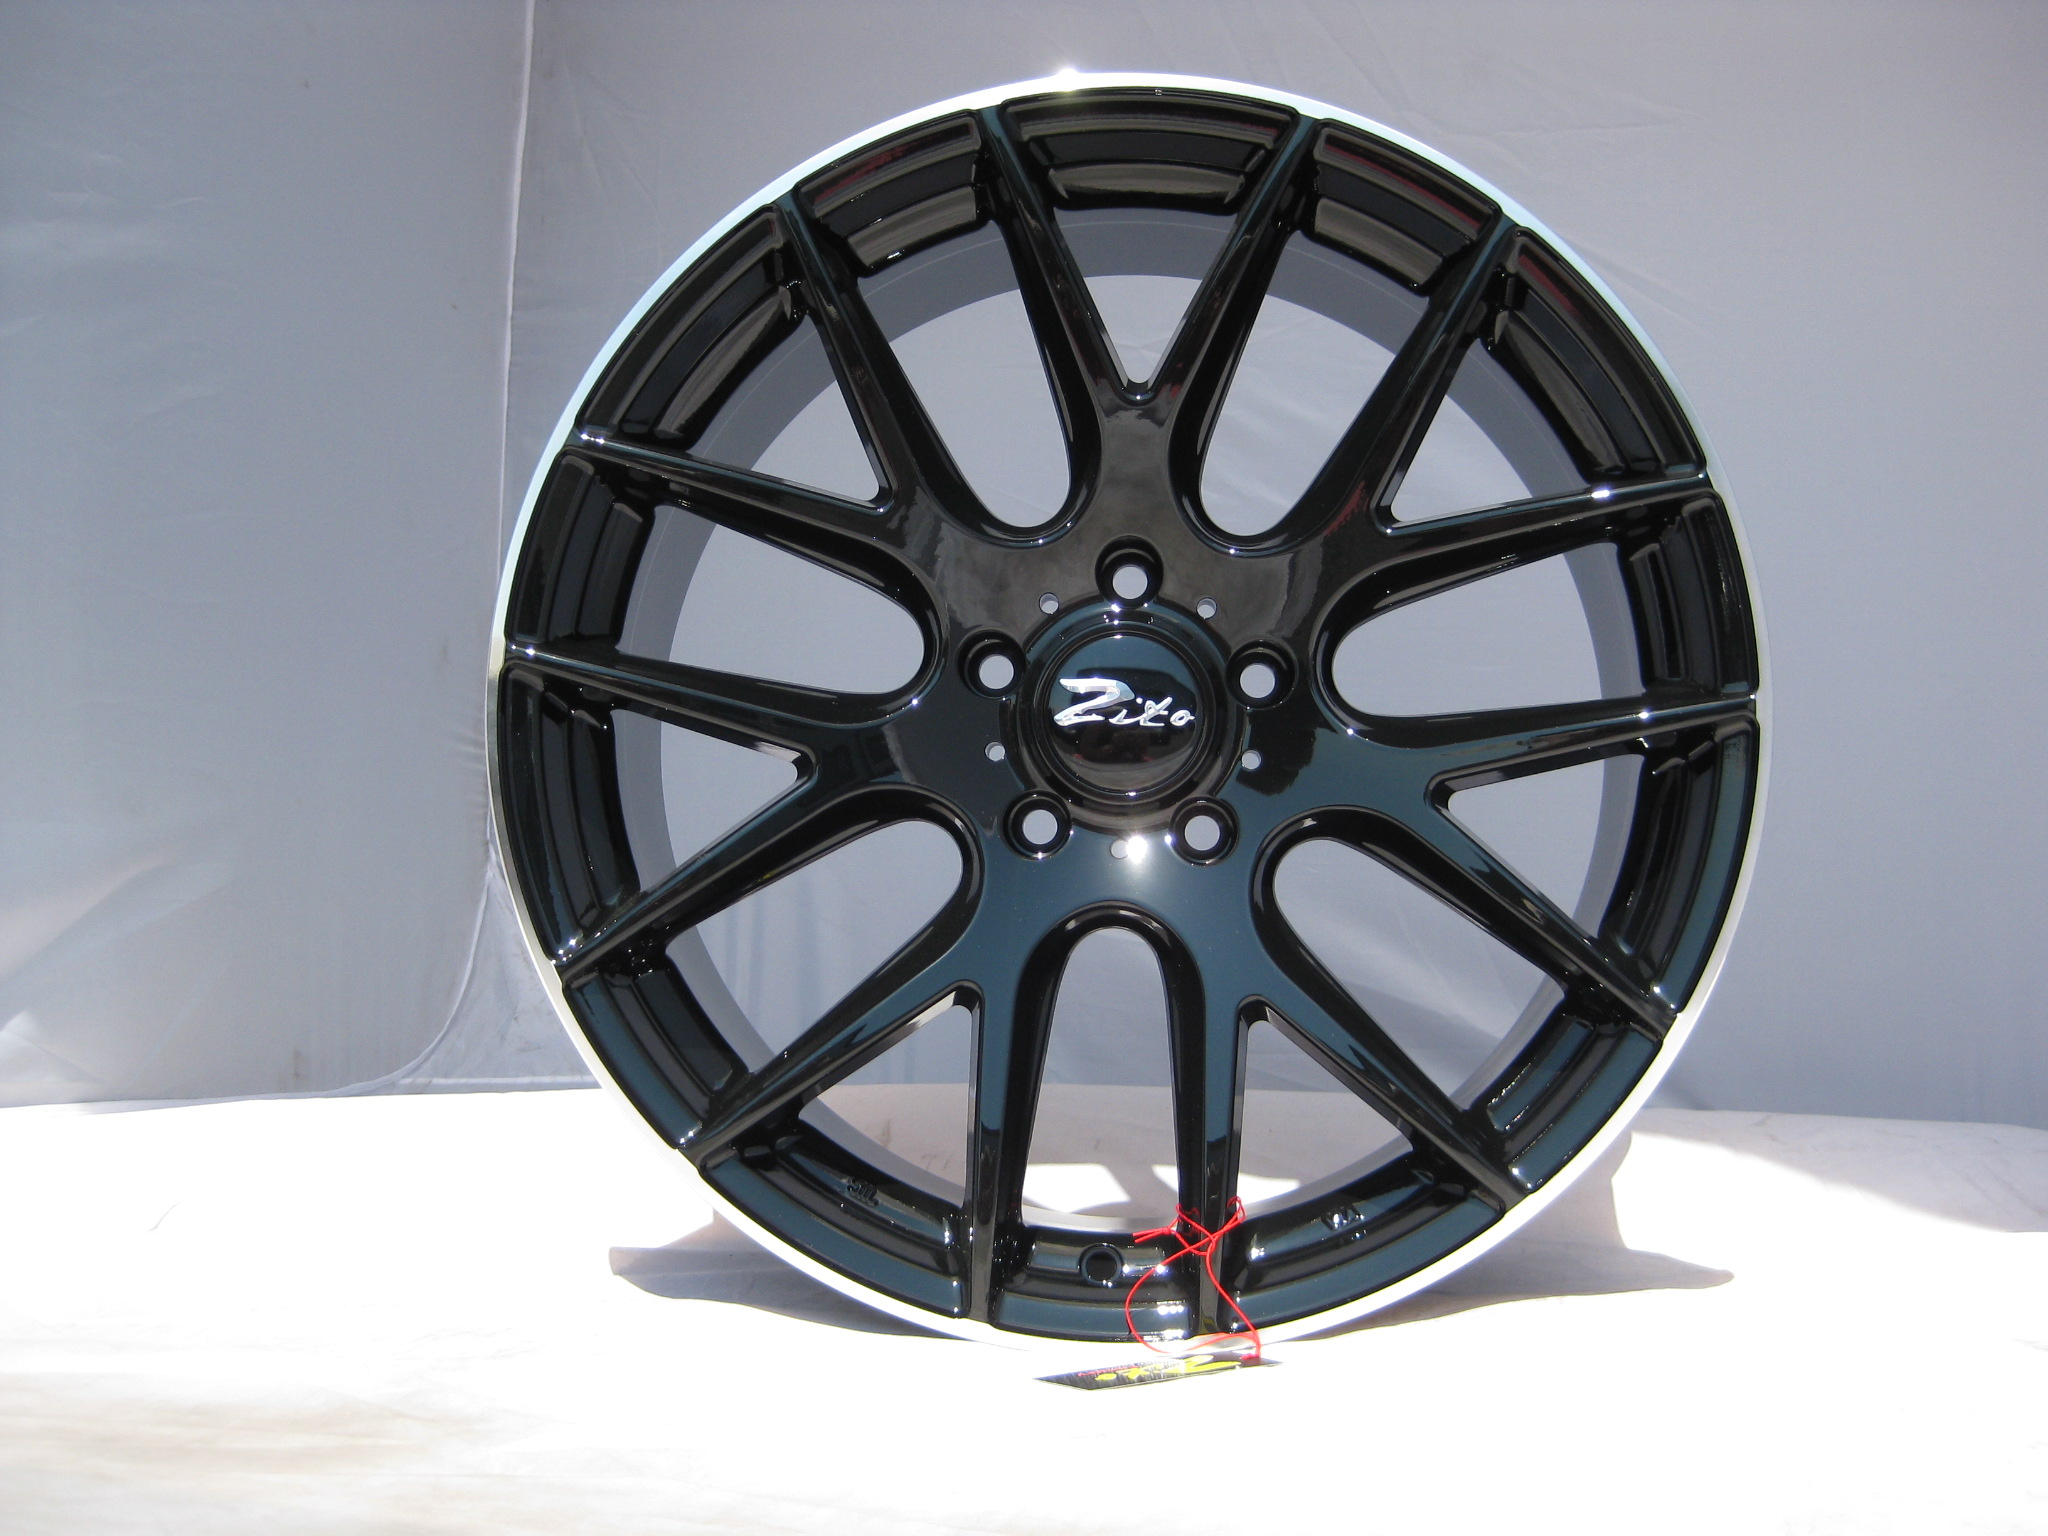 "NEW 19"" ZITO 935 CSL GTS ALLOY WHEELS IN GLOSS BLACK WITH POLISHED LIP, DEEPER CONCAVE 9.5"" REARS"